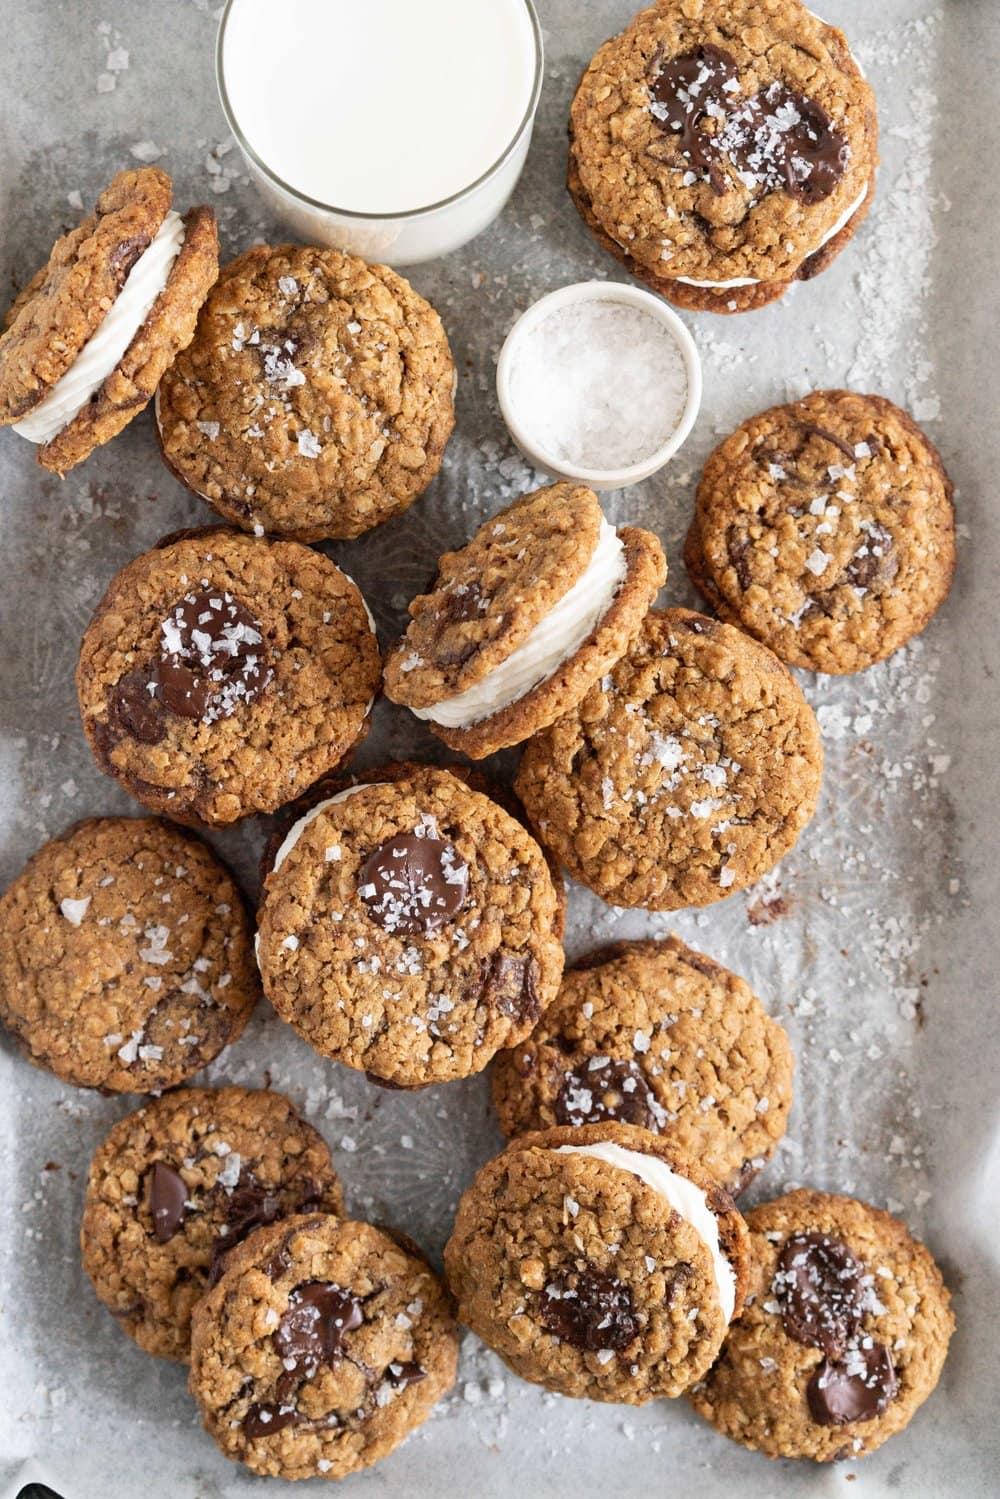 Oatmeal Chocolate Chunk Sandwich Cookies with Mascarpone Filling. Chewy Oatmeal Chocolate Chunk Cookies are filled with a smooth mascarpone filling. A sandwich cookie take on a classic favourite. #oatmealcookie #cookiesandwich